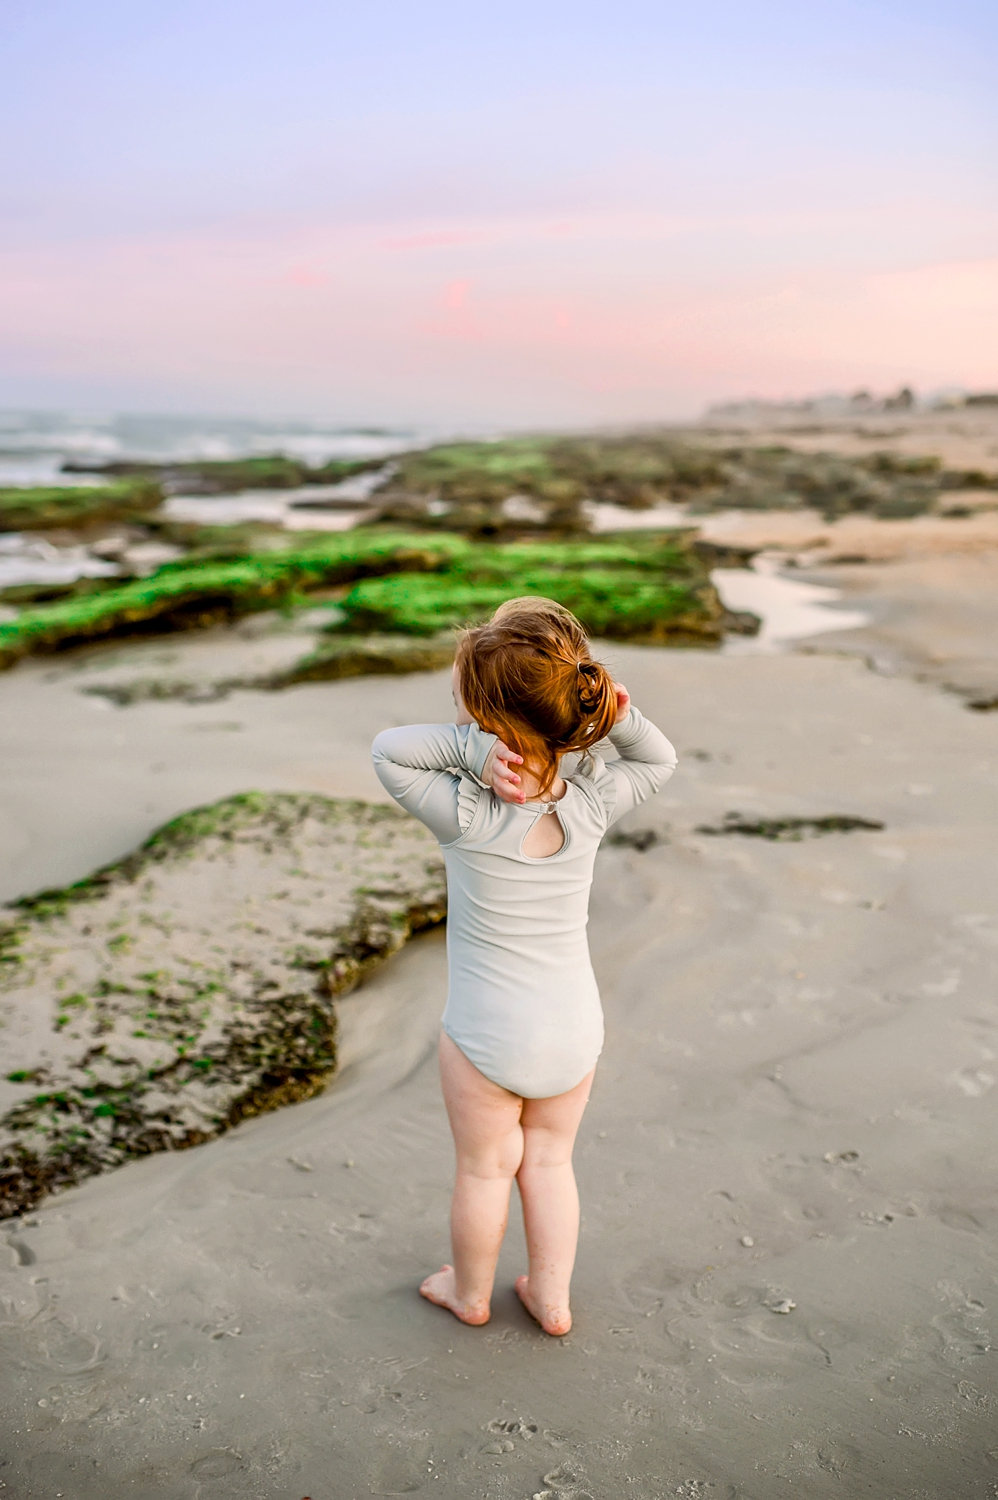 little girl staring out at rocky, mossy coastline, Florida, Ryaphotos